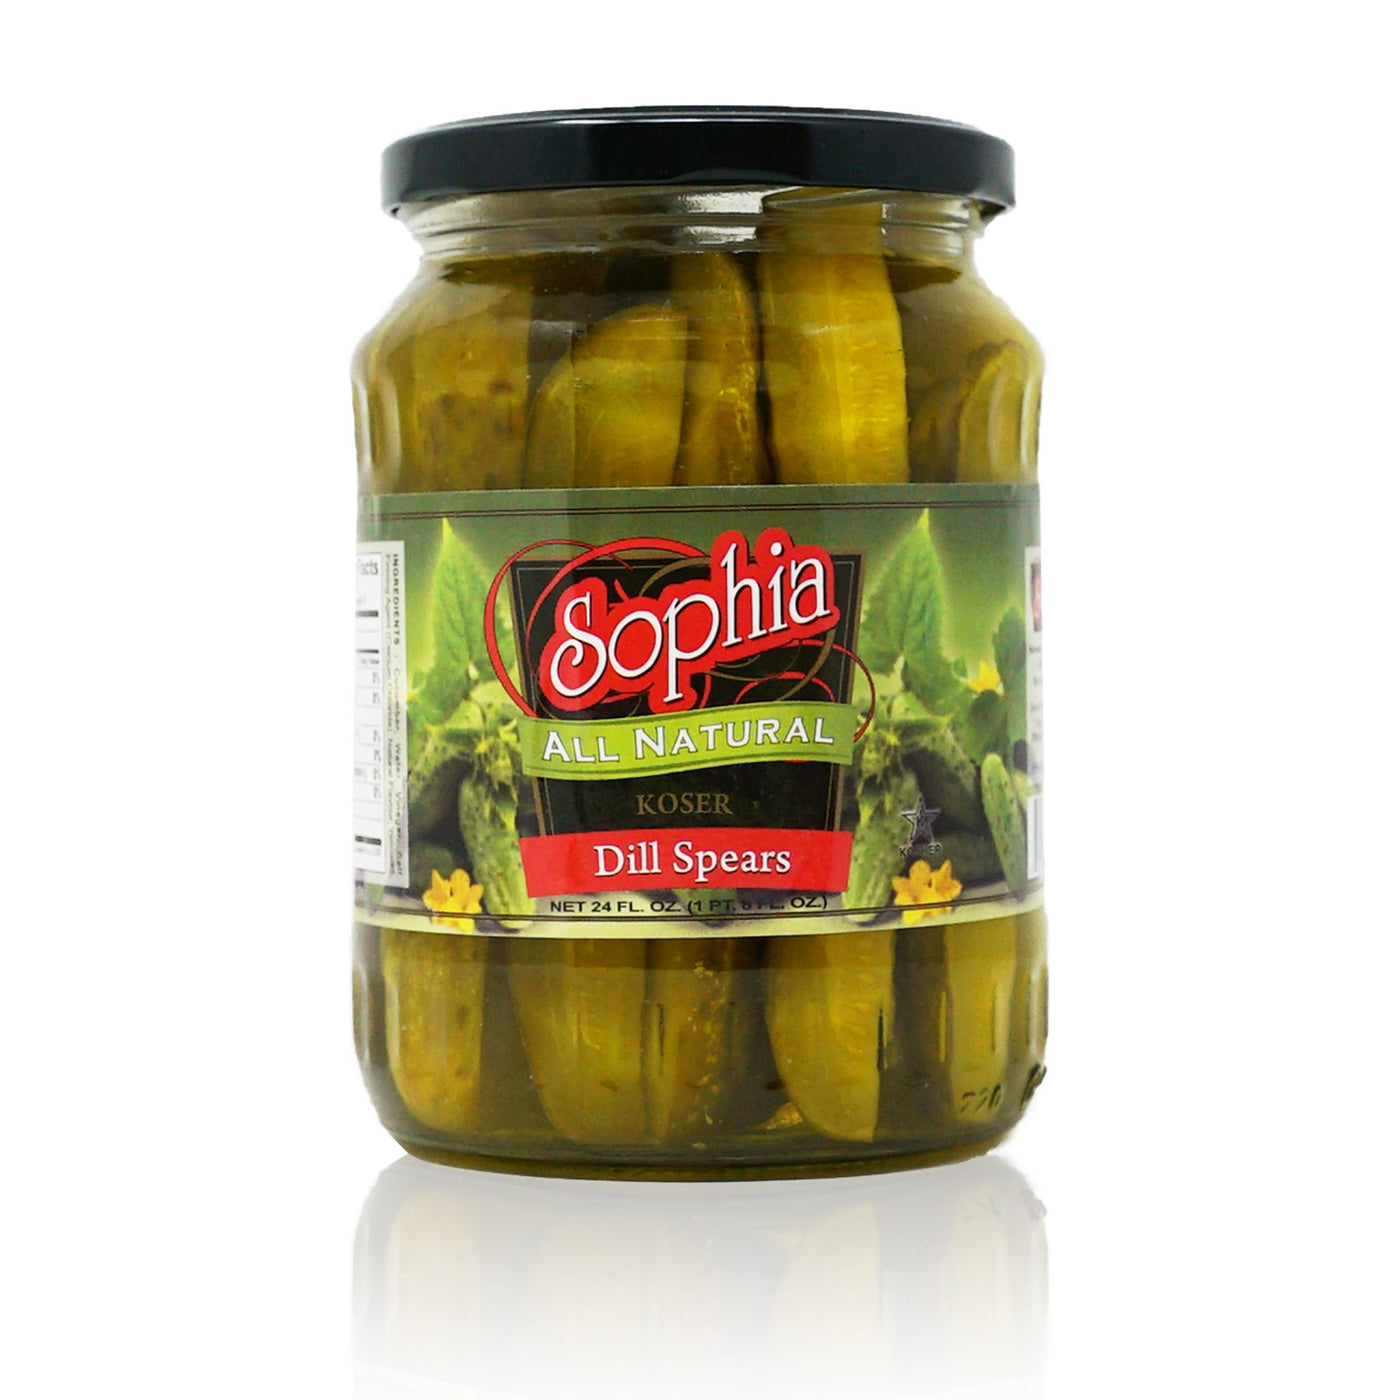 Sophia Pickles - Dill Spears